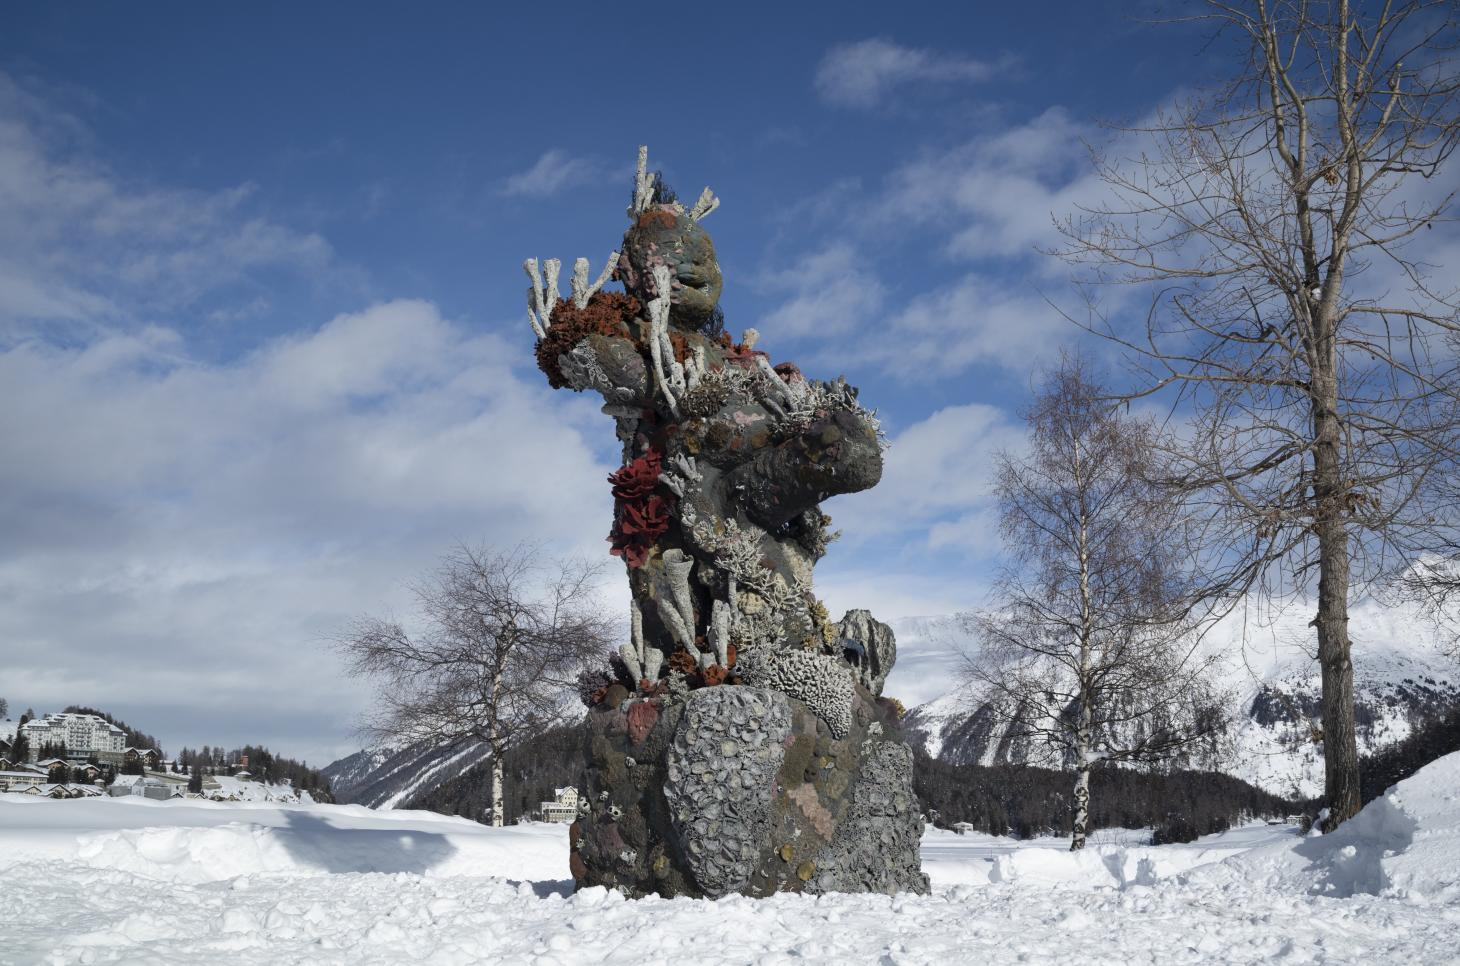 Photograph of Damien Hirst's Two Figures With A Drum sculpture installed in St. Moritz